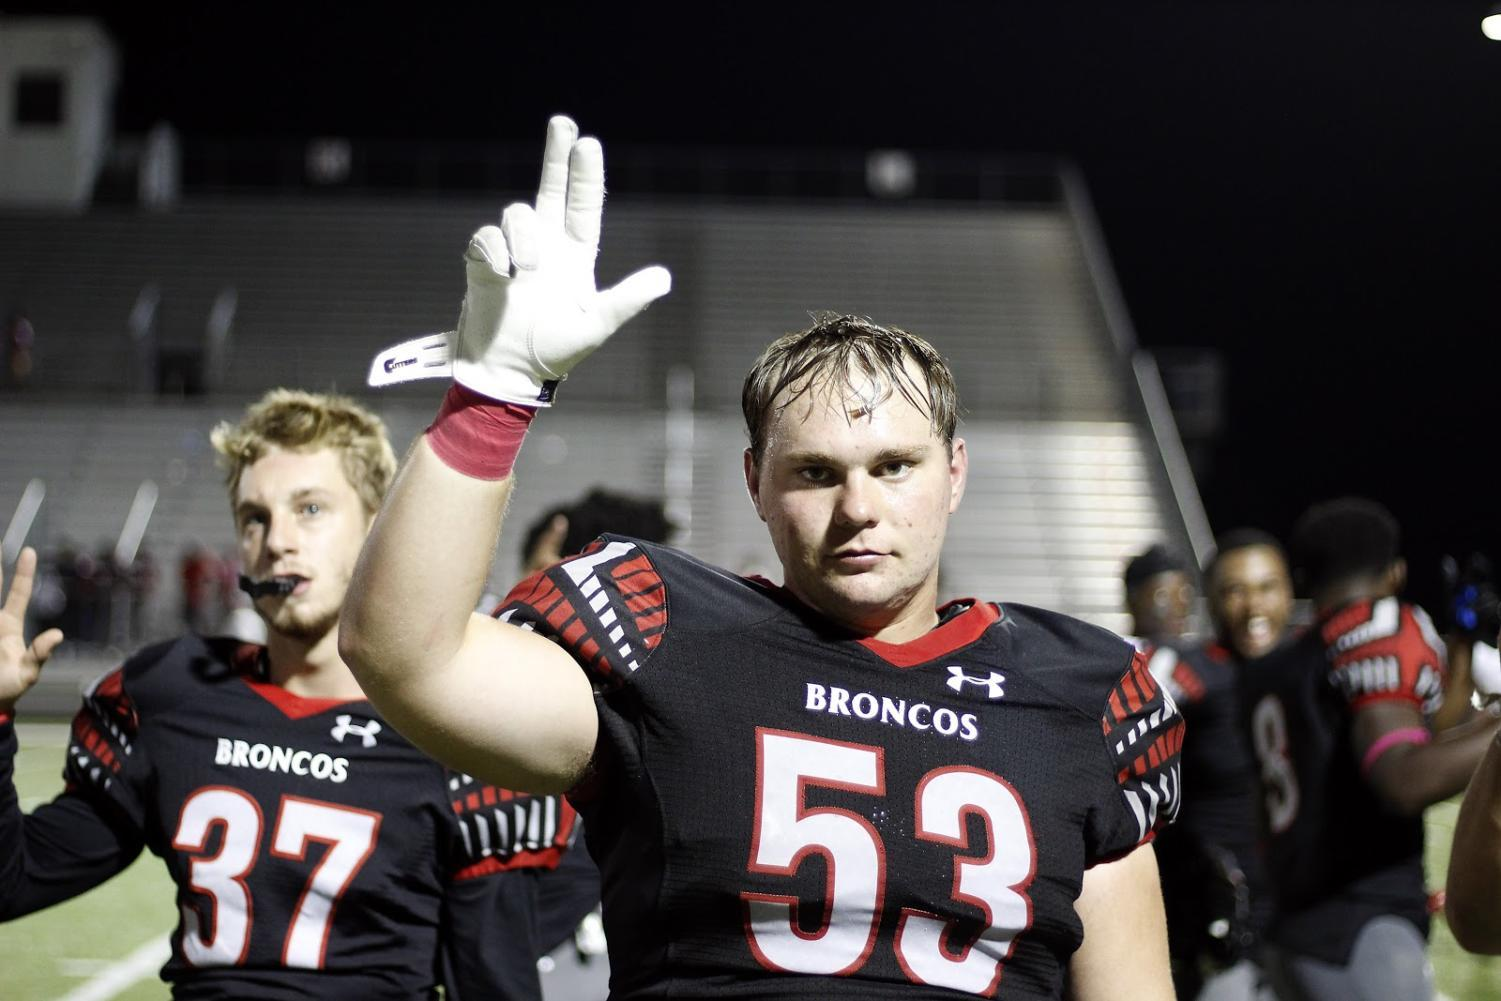 Senior Toby Griffin stands for the School Song at the ending of the game against Mansfield Timberview, the last game he played before finding out he could no longer participate in football.